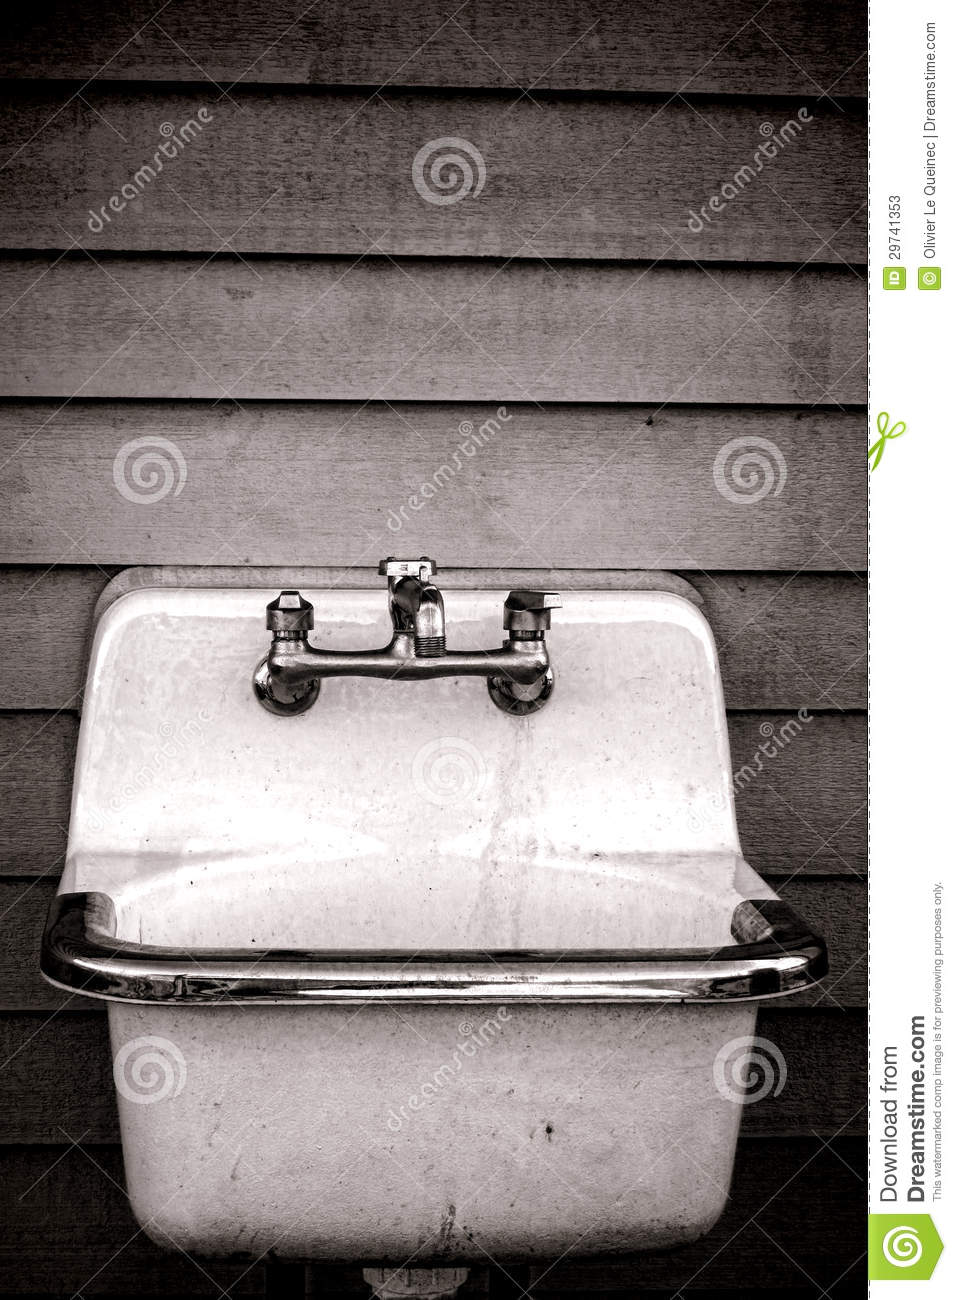 Vintage Enamel Utility Tub Sink On Old House Wall Stock Photos  Image 29741353 # Wasbak Vintage_175721